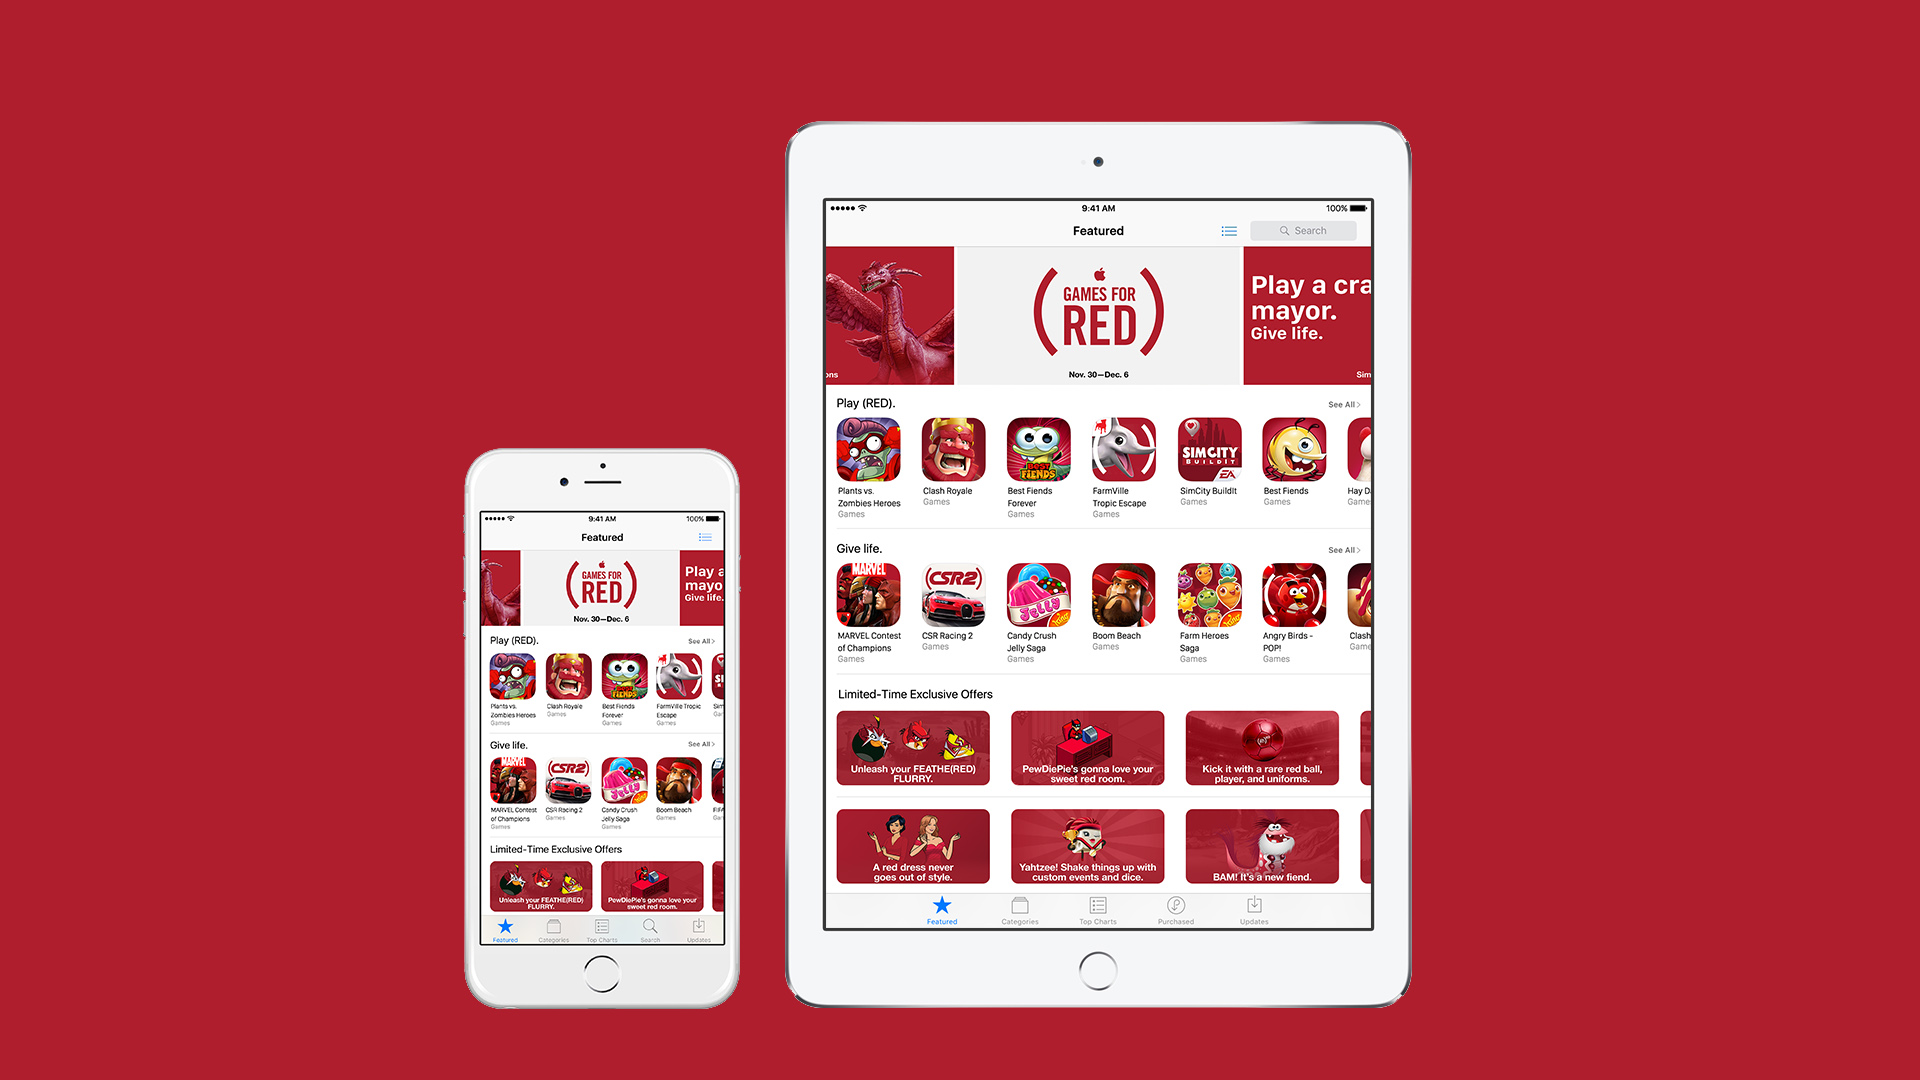 app-store-red-image